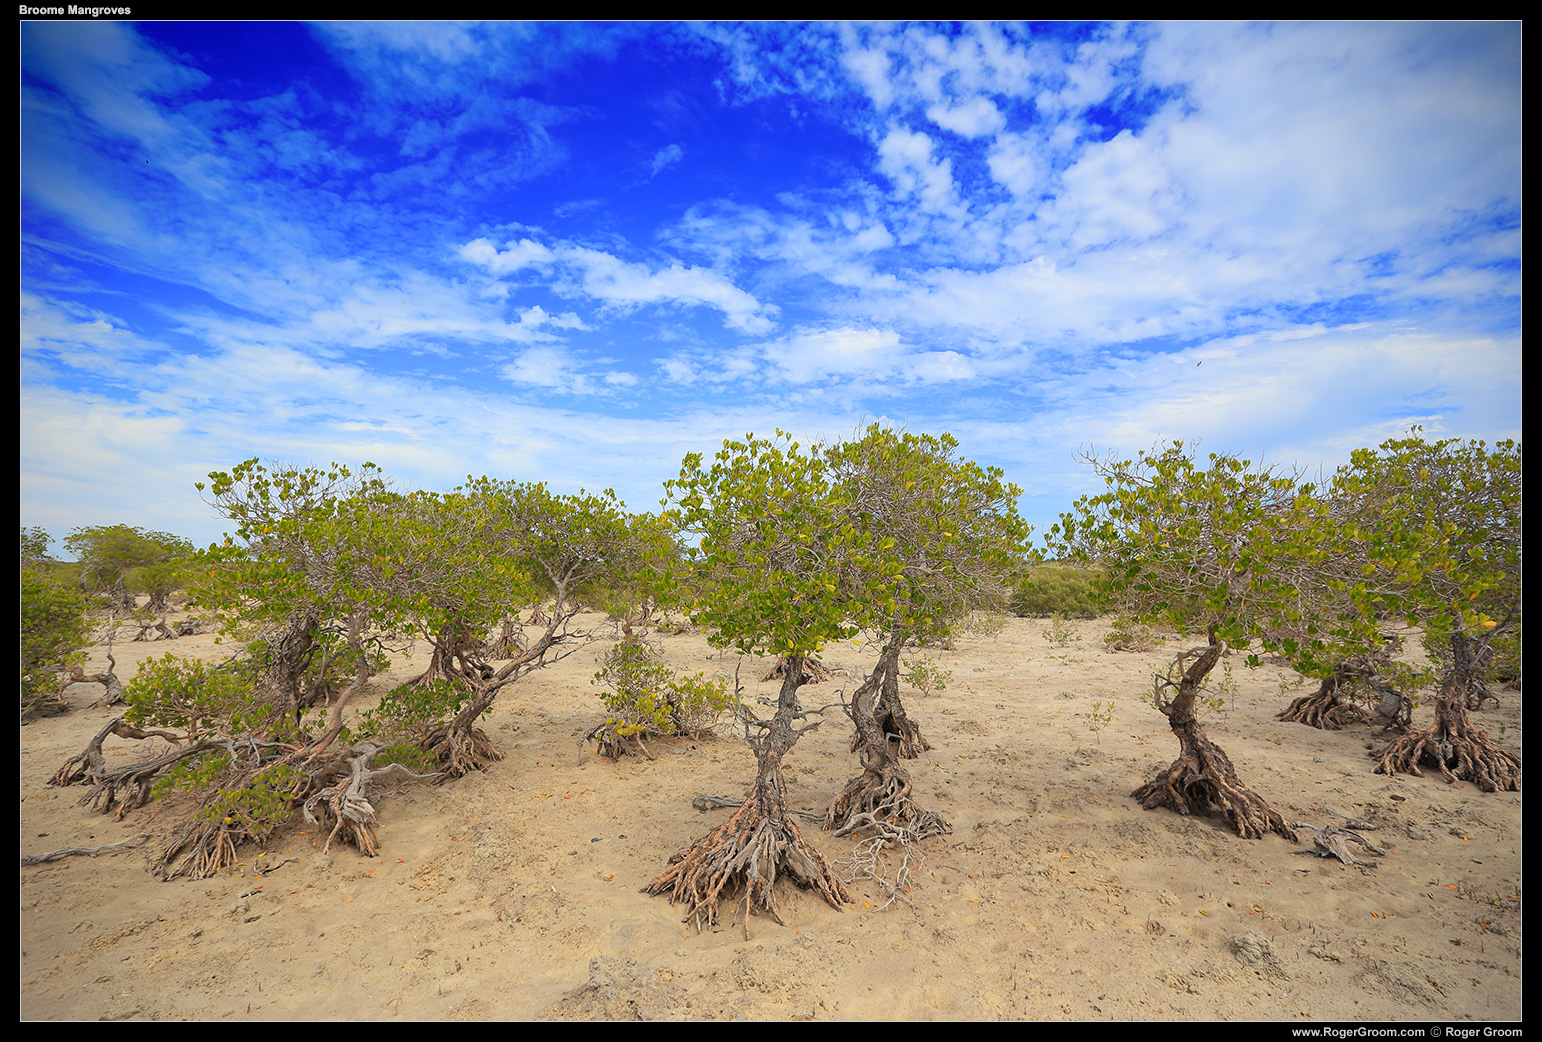 Mangroves at Barred Creek - Broome, Western Australia